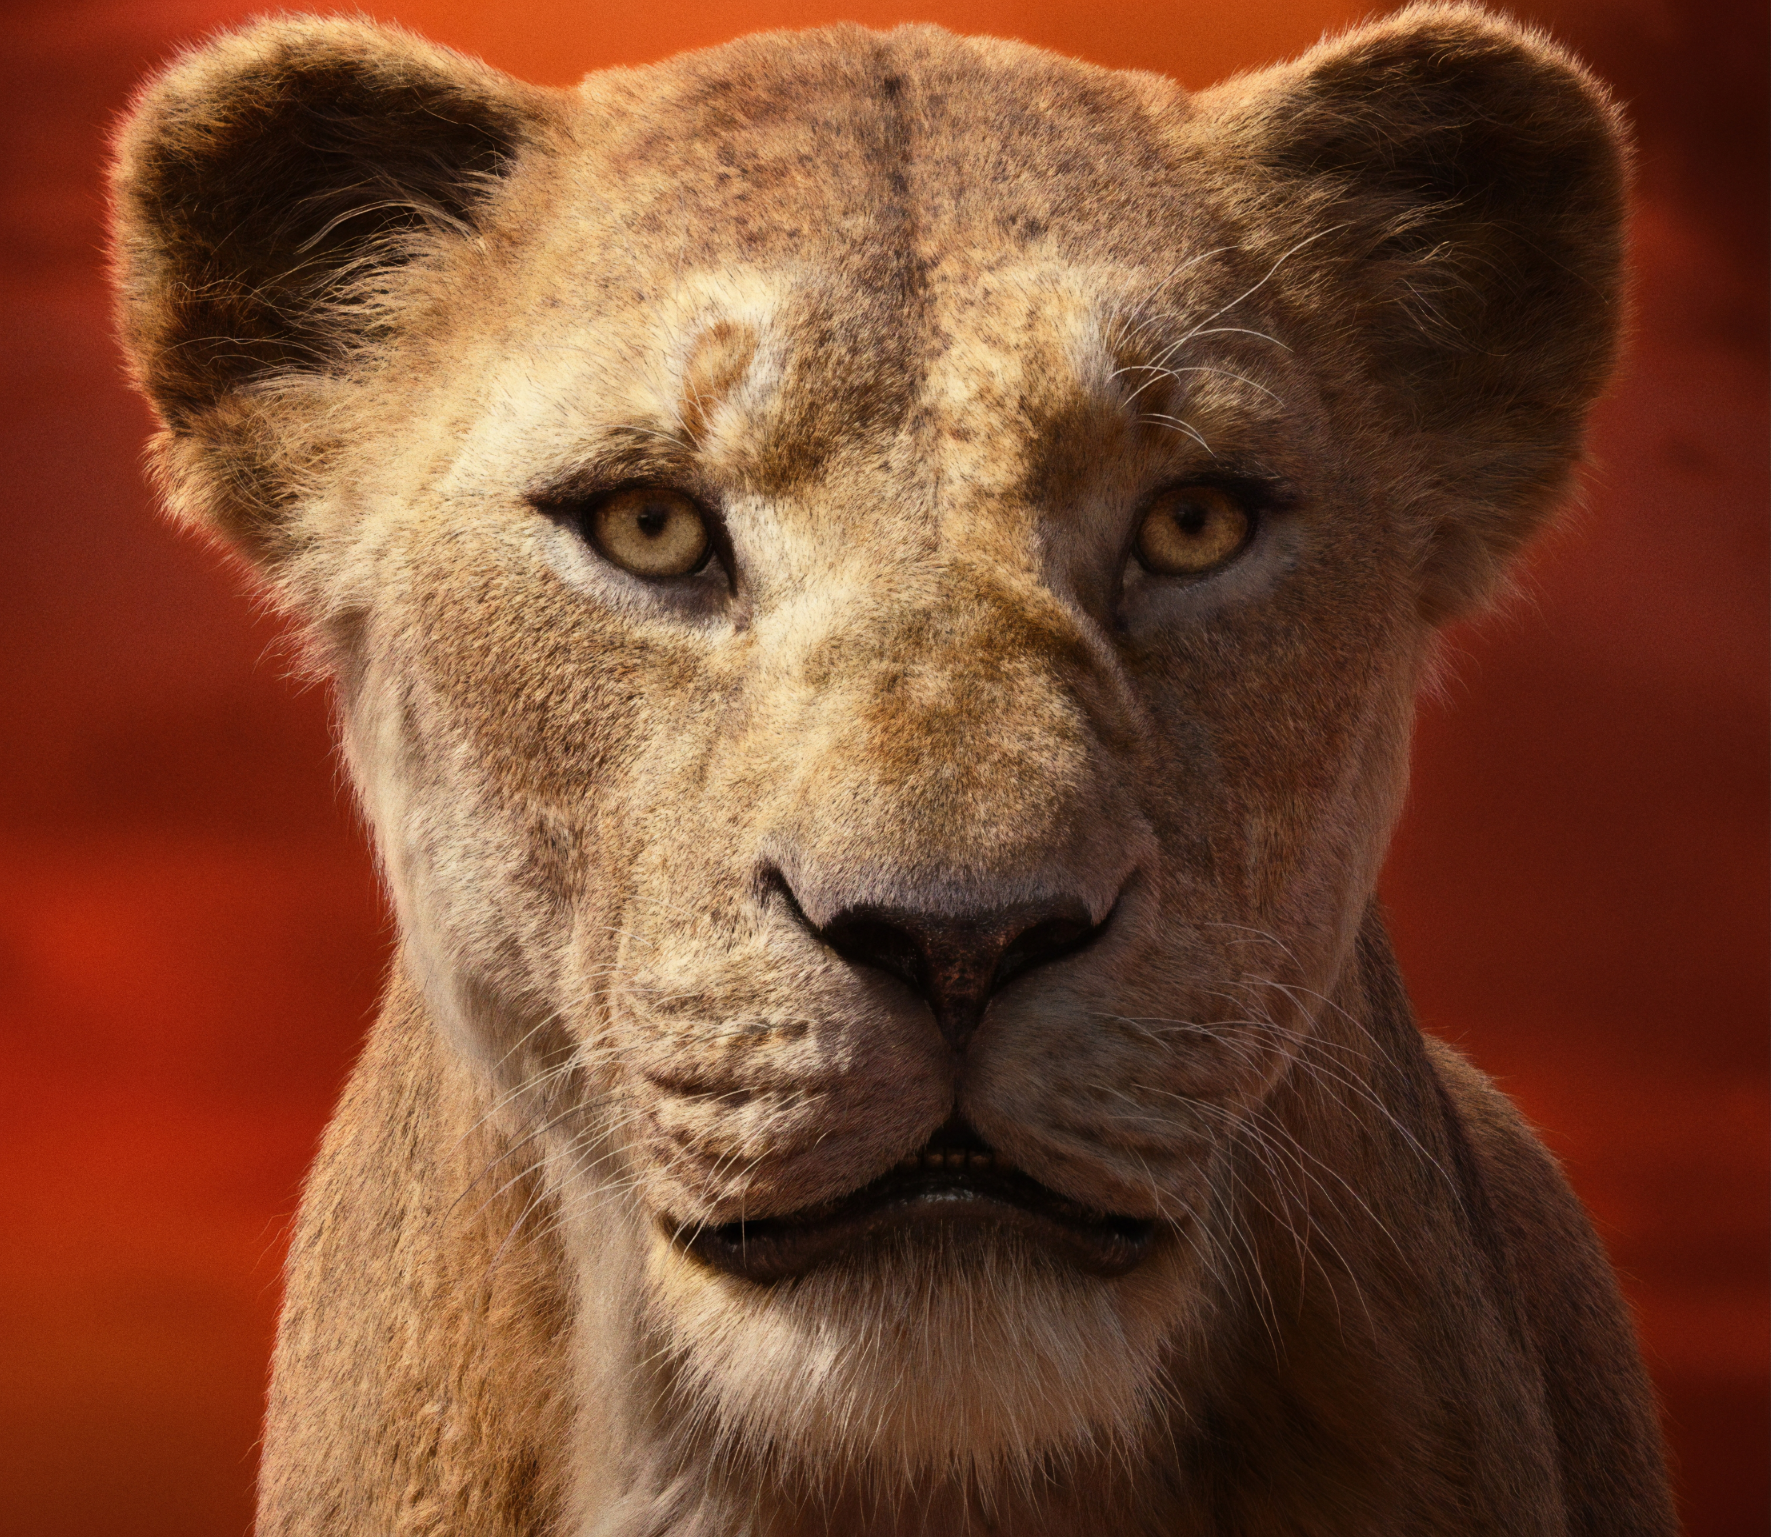 The Lion King Remake: Ranking All The Main Characters In